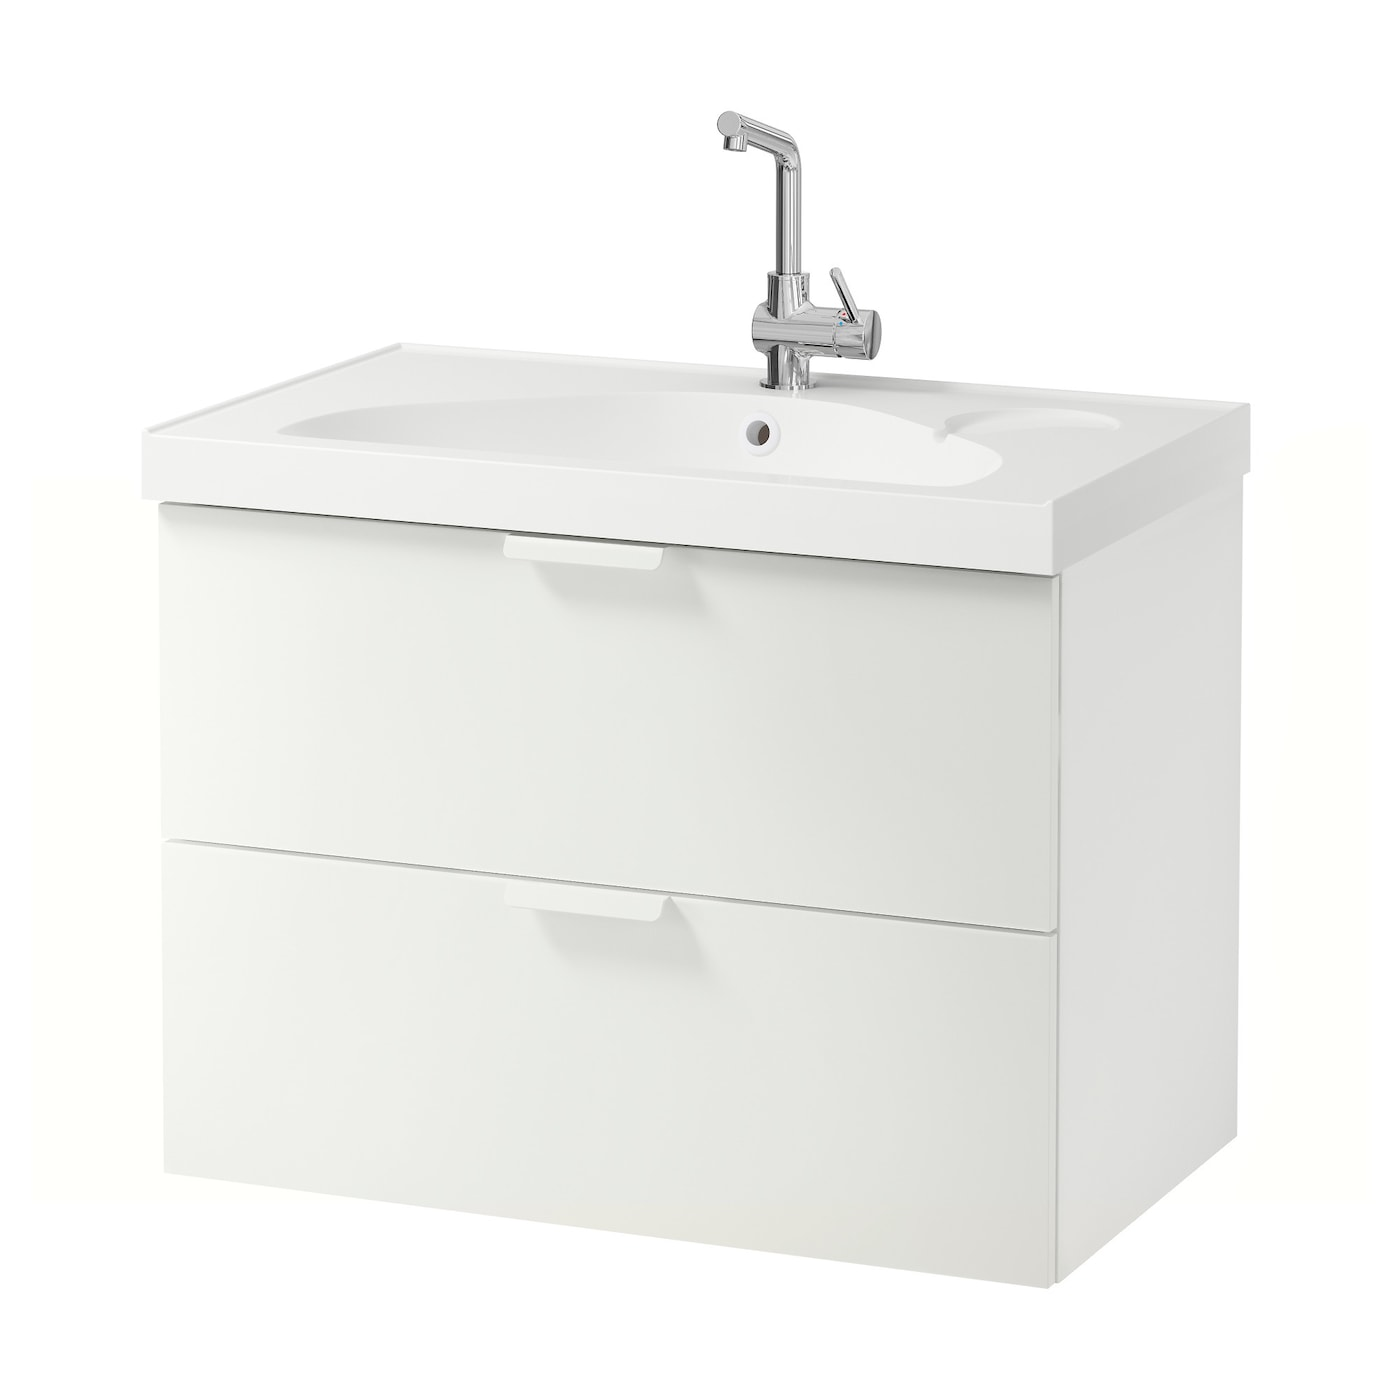 white bathroom sink cabinet godmorgon edeboviken wash stand with 2 drawers white 21443